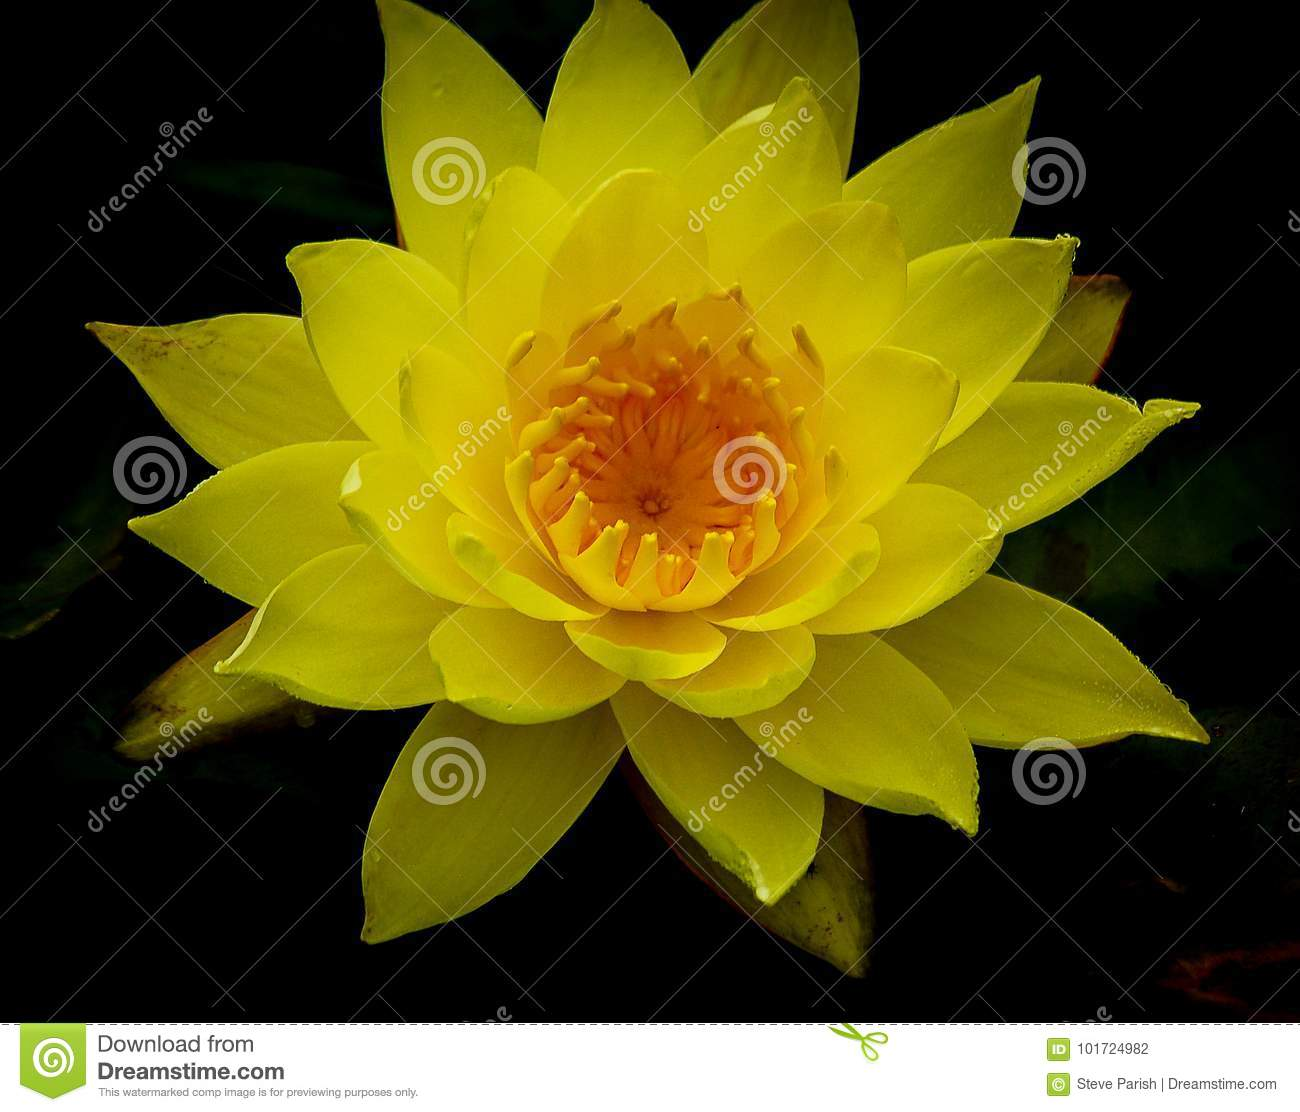 Single Vivid Yellow Lotus Flower In Full Bloom Against Dark